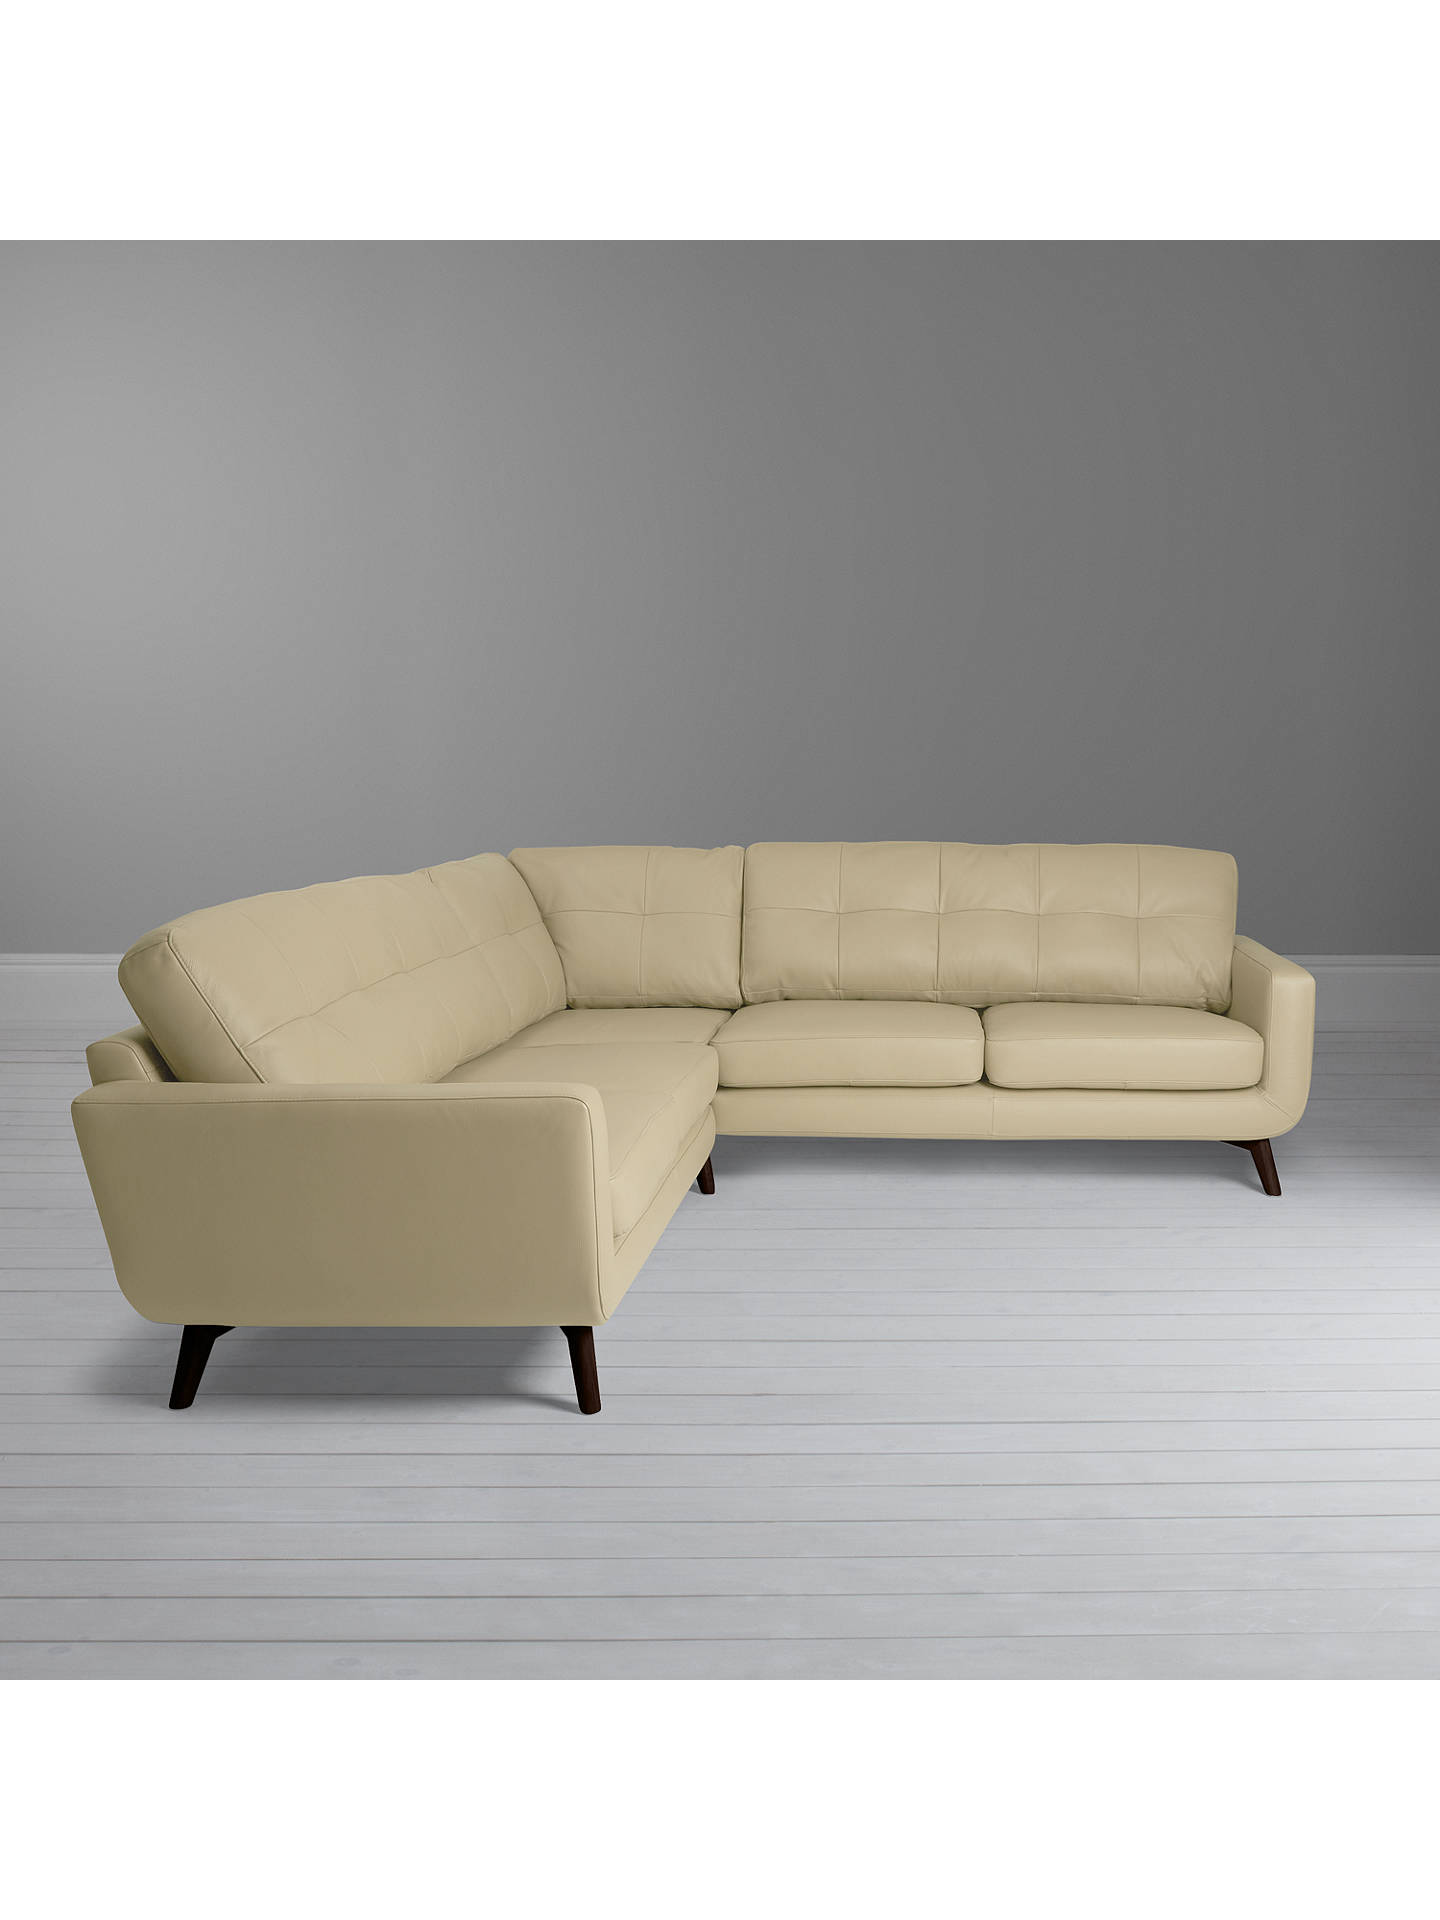 Buy John Lewis & Partners Barbican Leather Corner Sofa, Dark Leg, Nature Cream Online at johnlewis.com